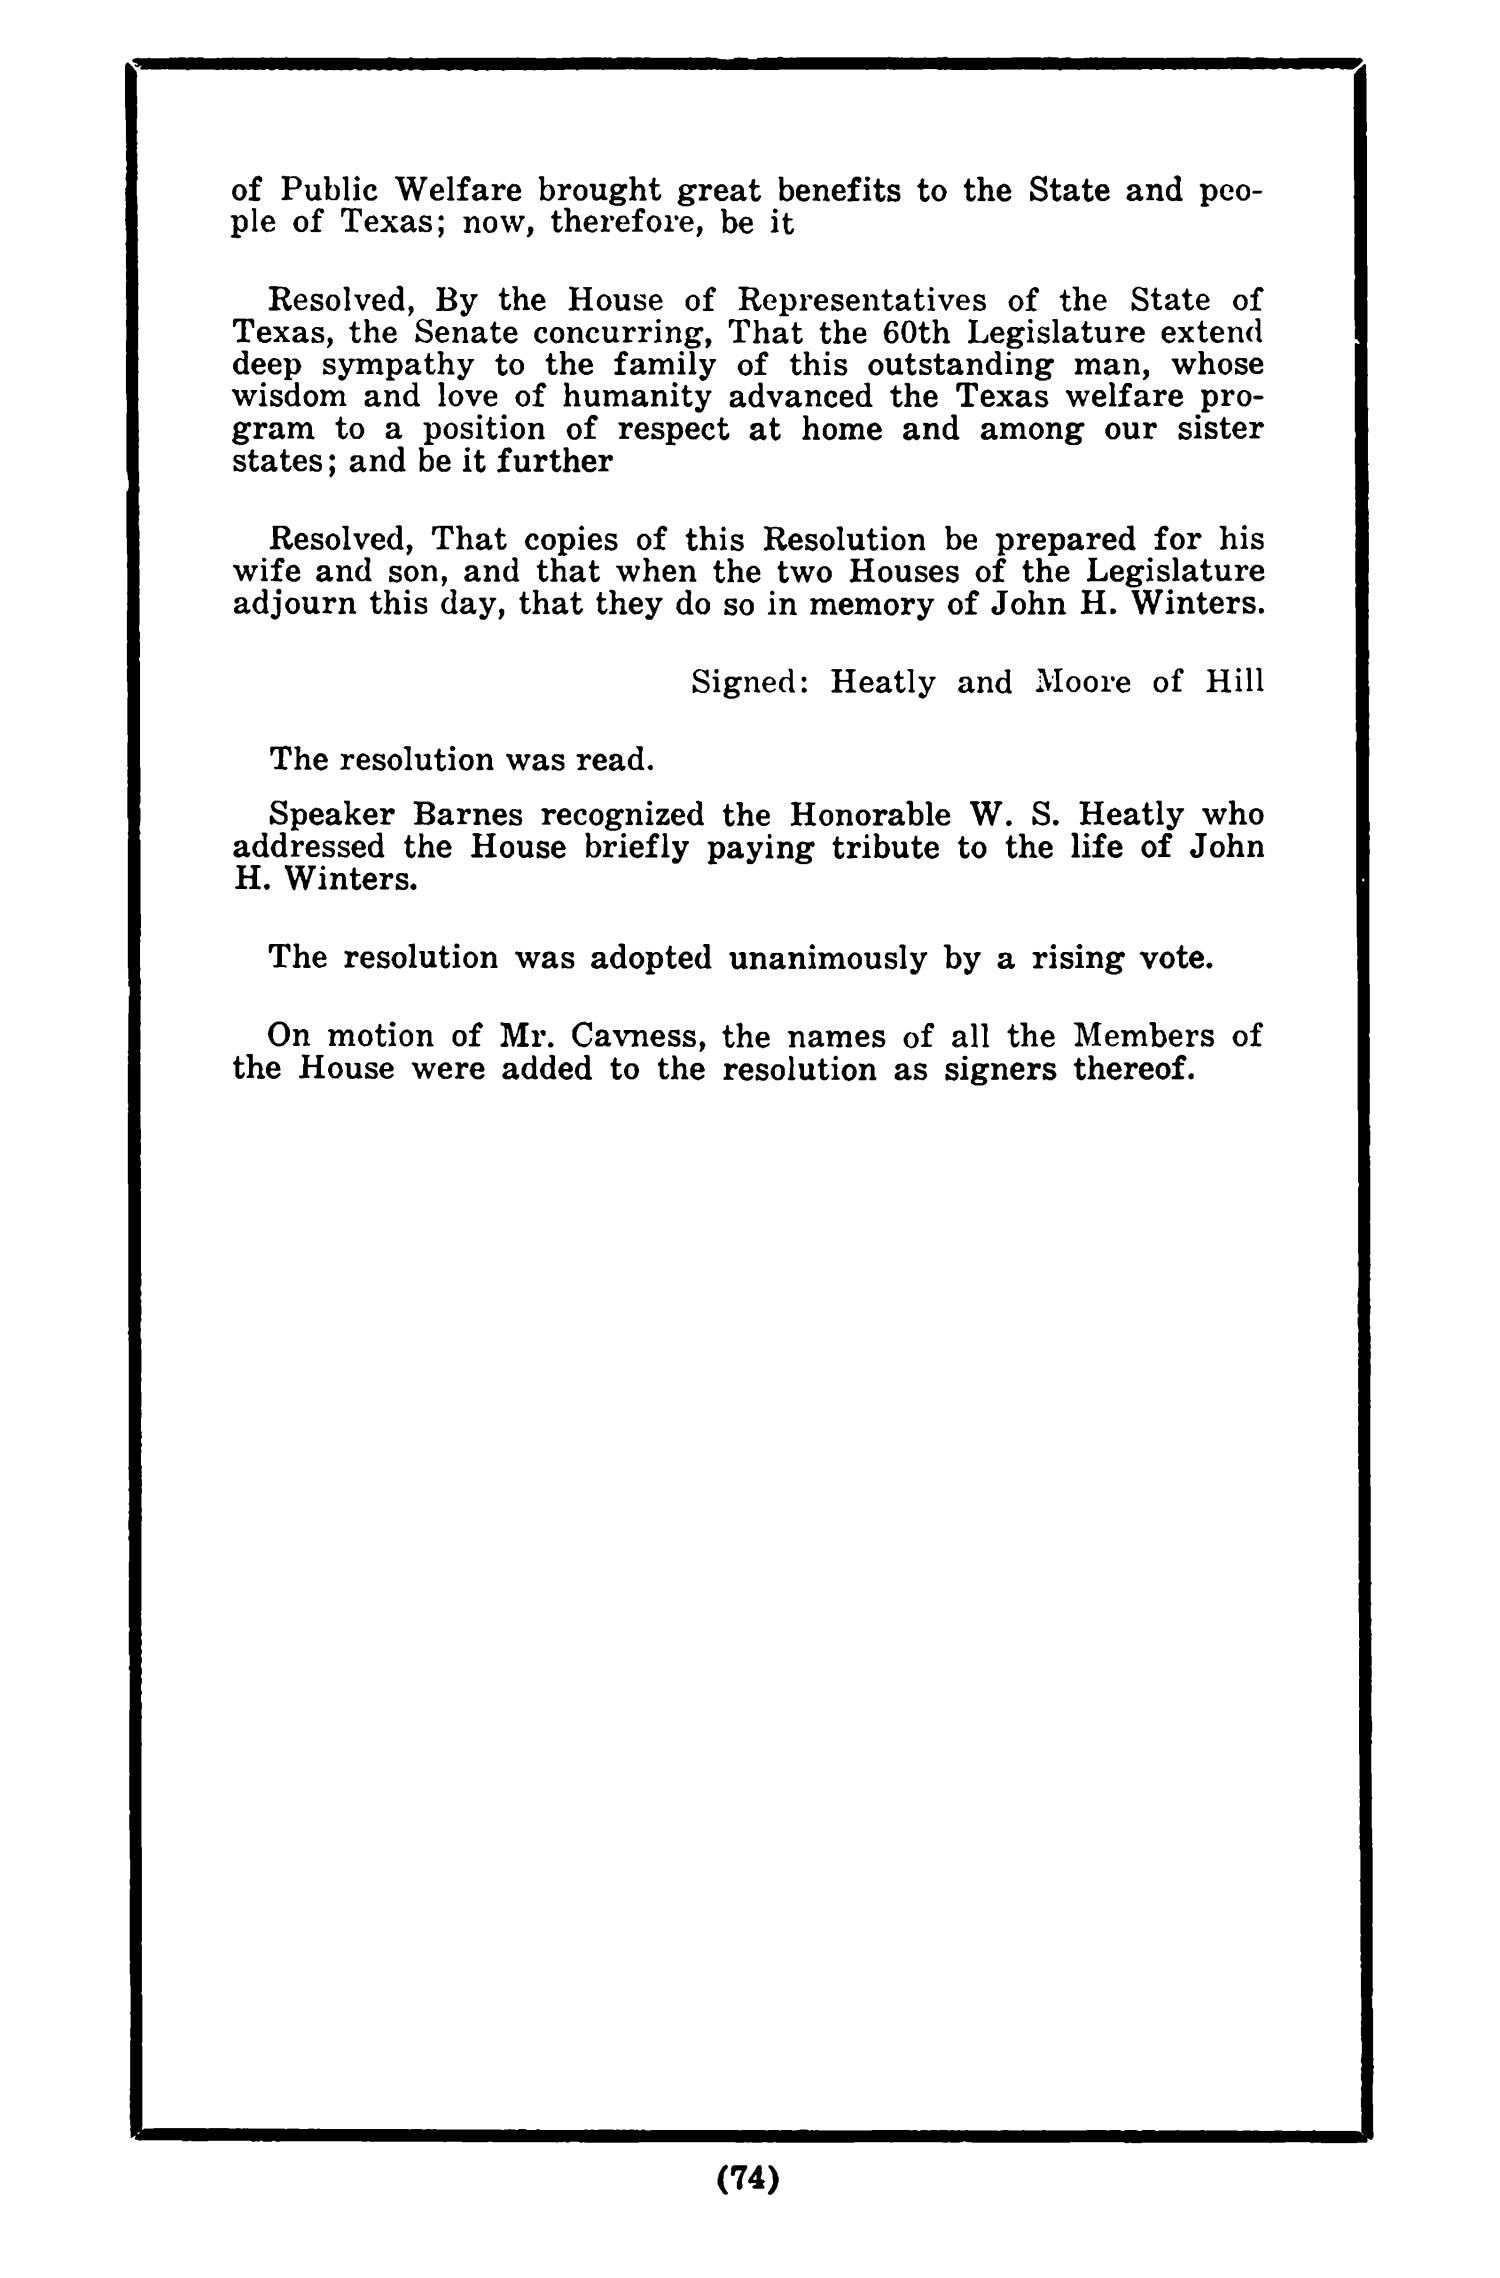 Journal of the House of Representatives of the Regular Session of the Sixtieth Legislature of the State of Texas, Volume 1                                                                                                      74